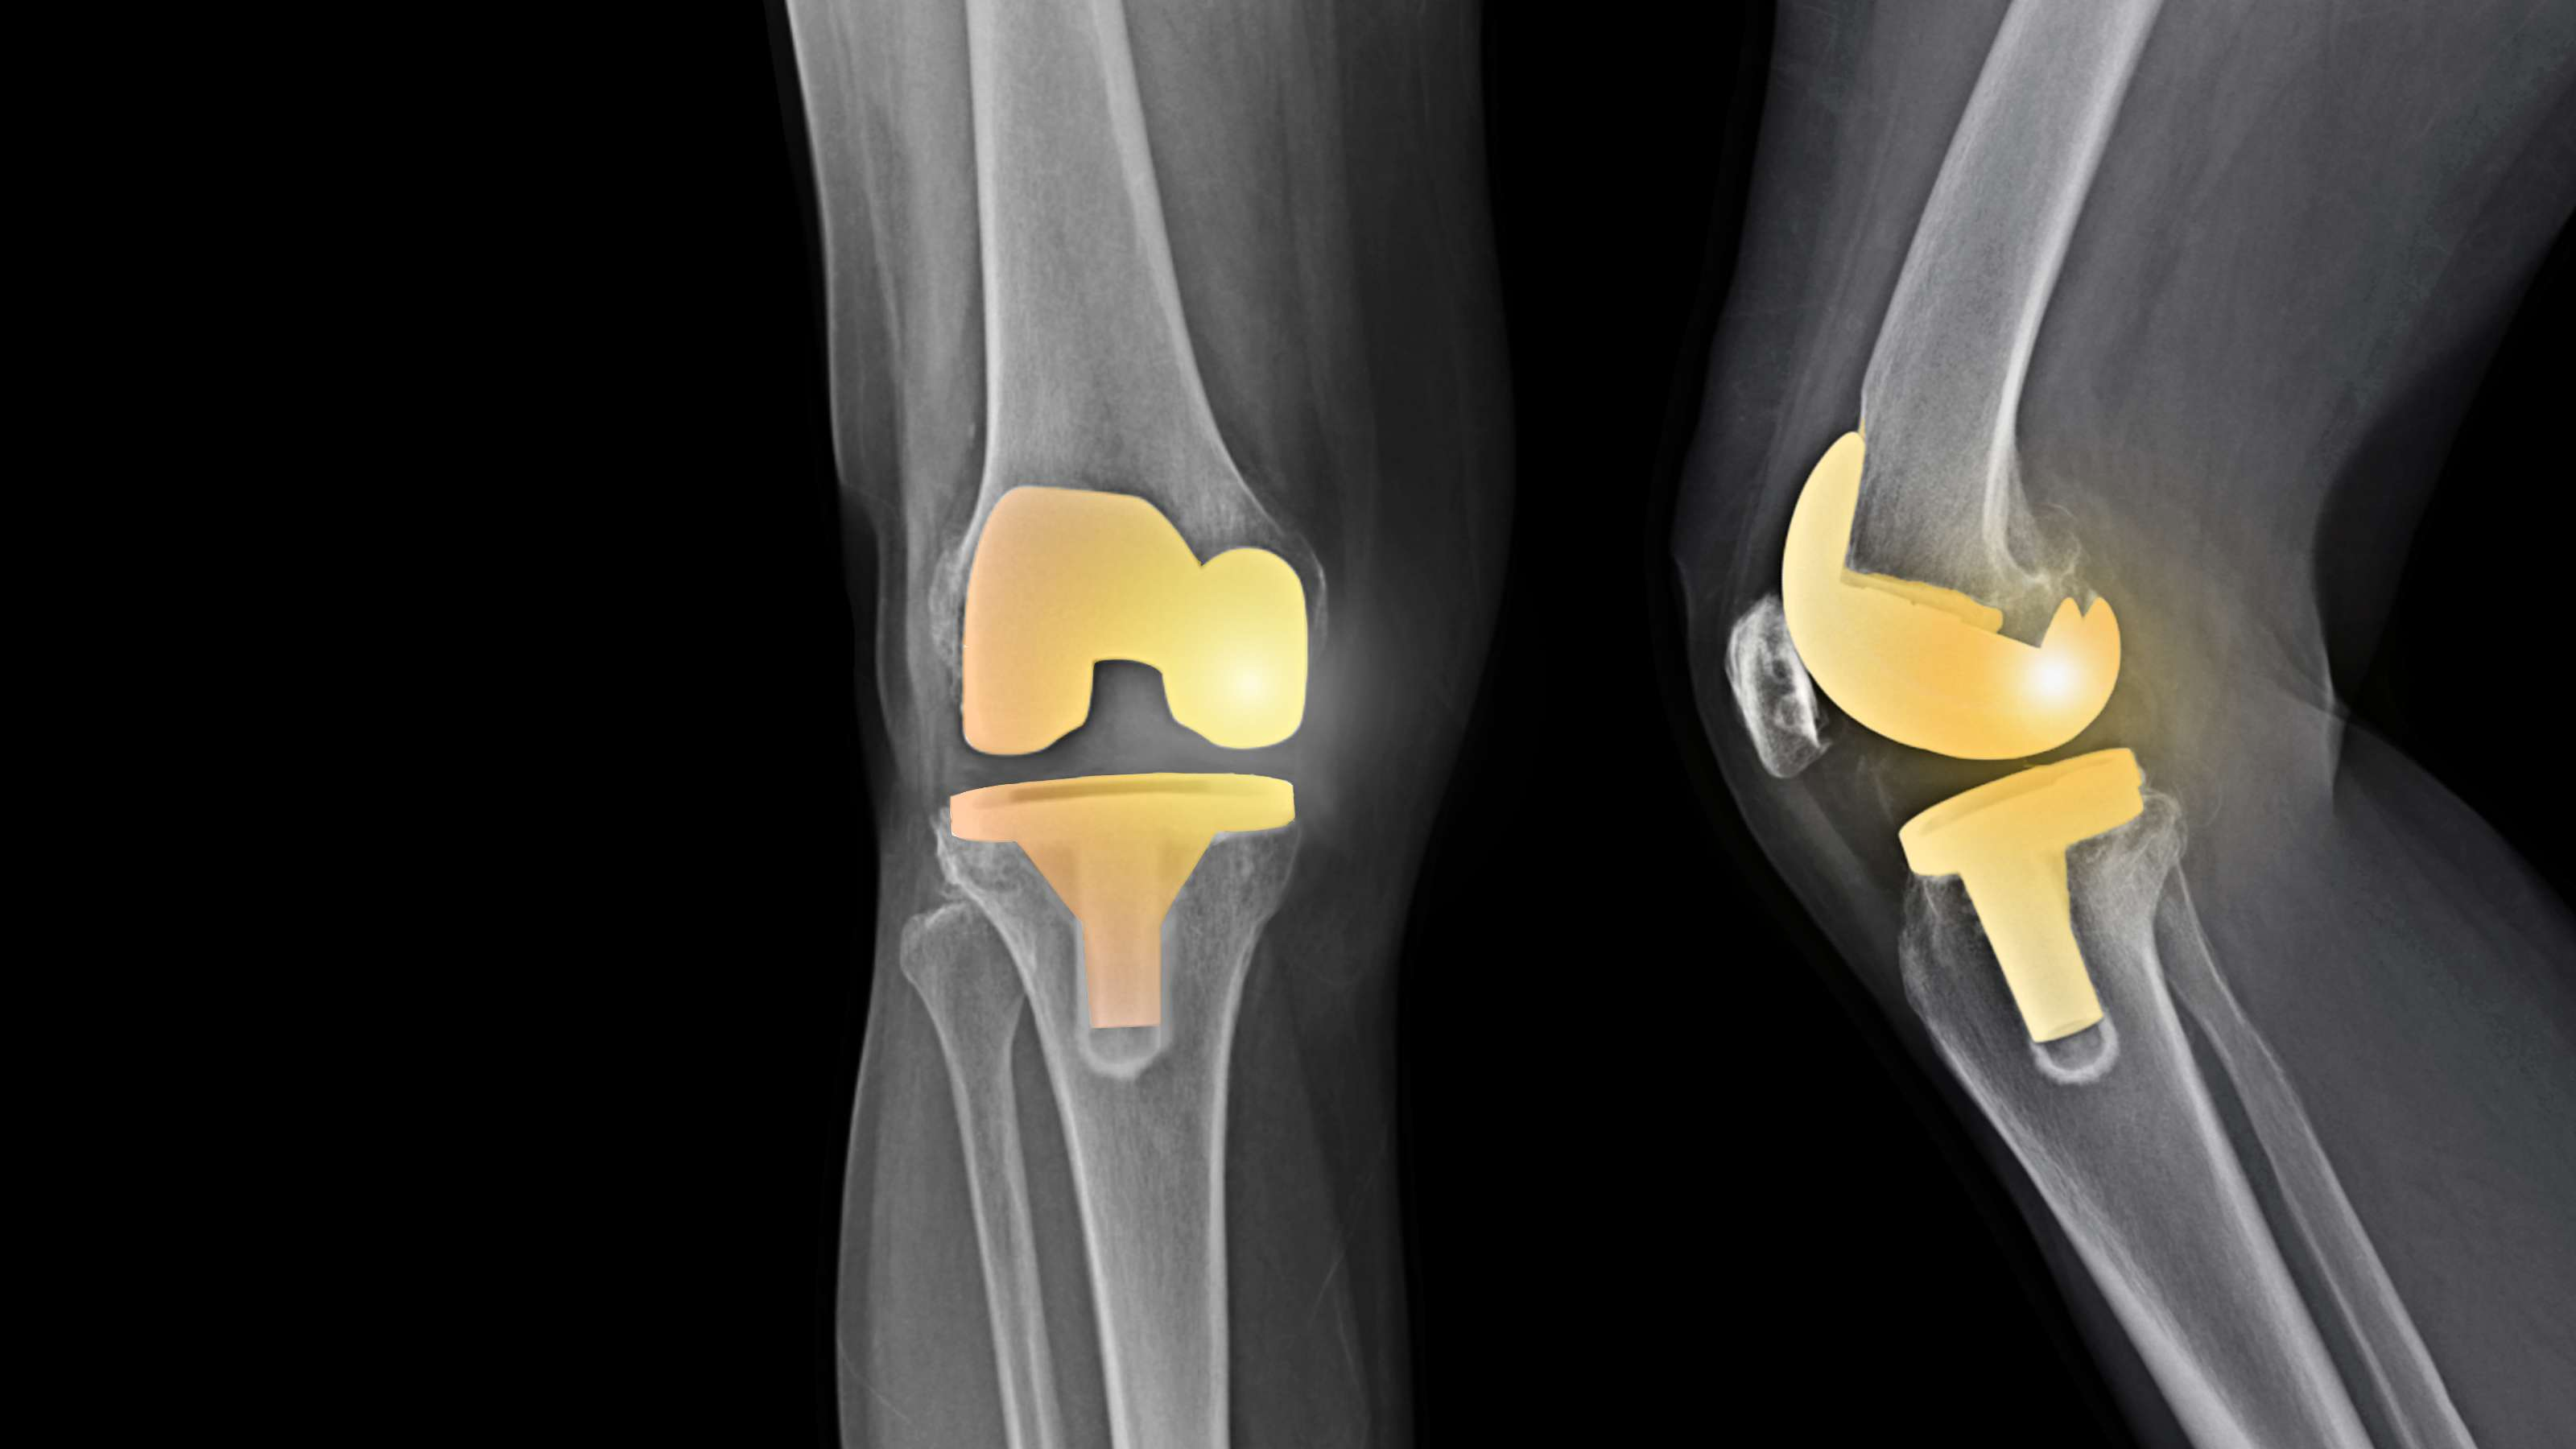 X-ray showing total knee replacement